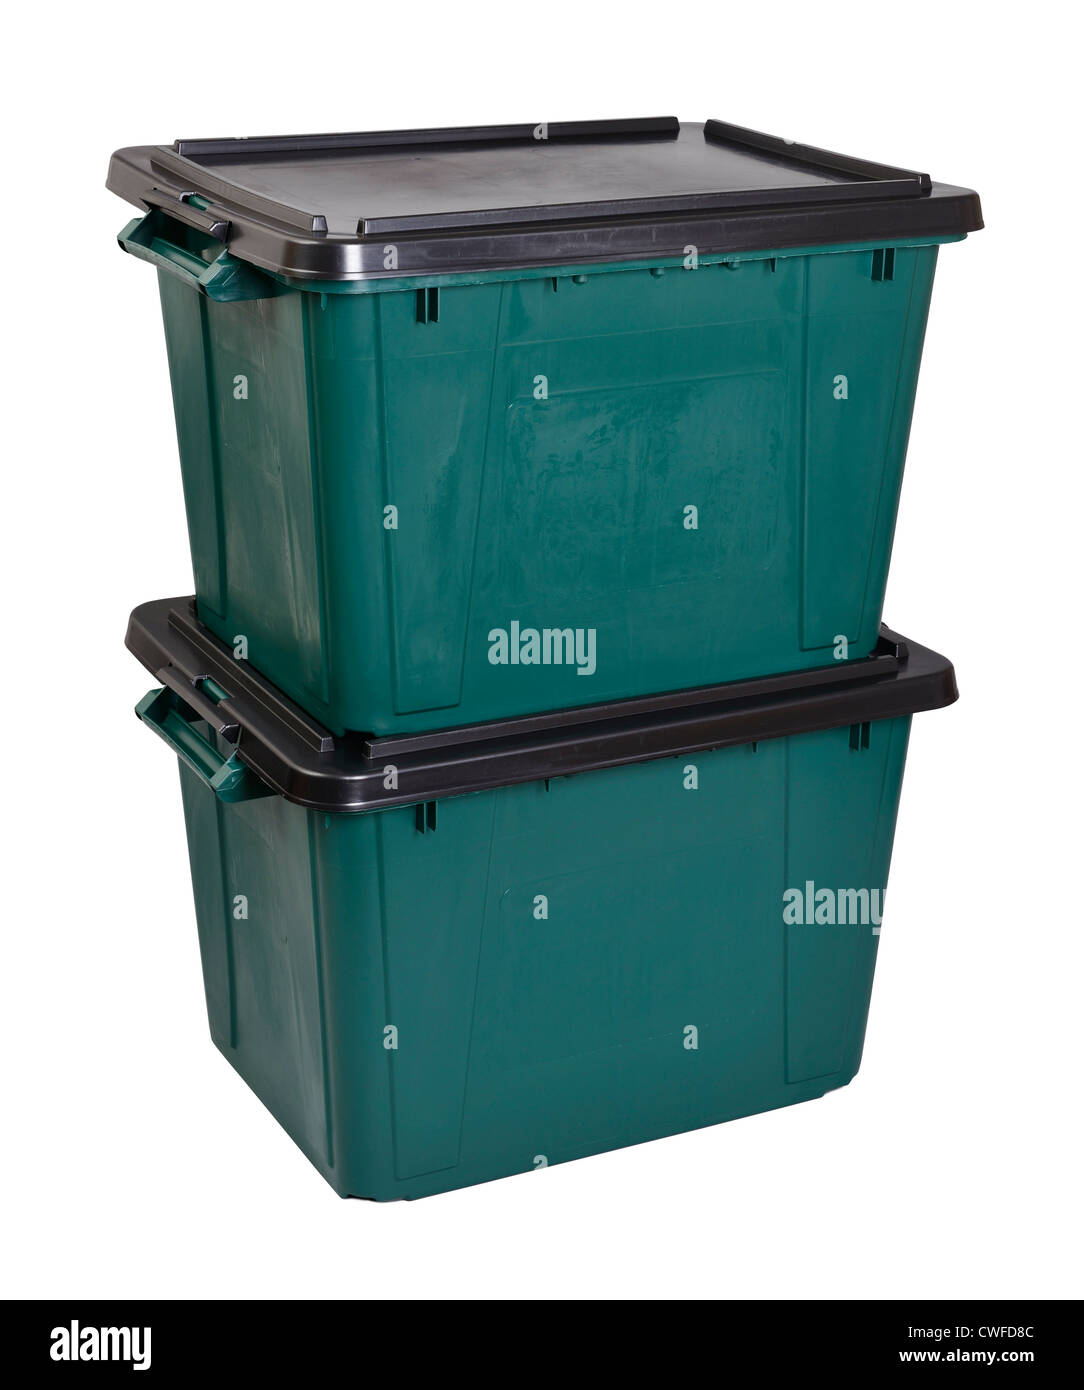 Two green plastic storage boxes - Stock Image